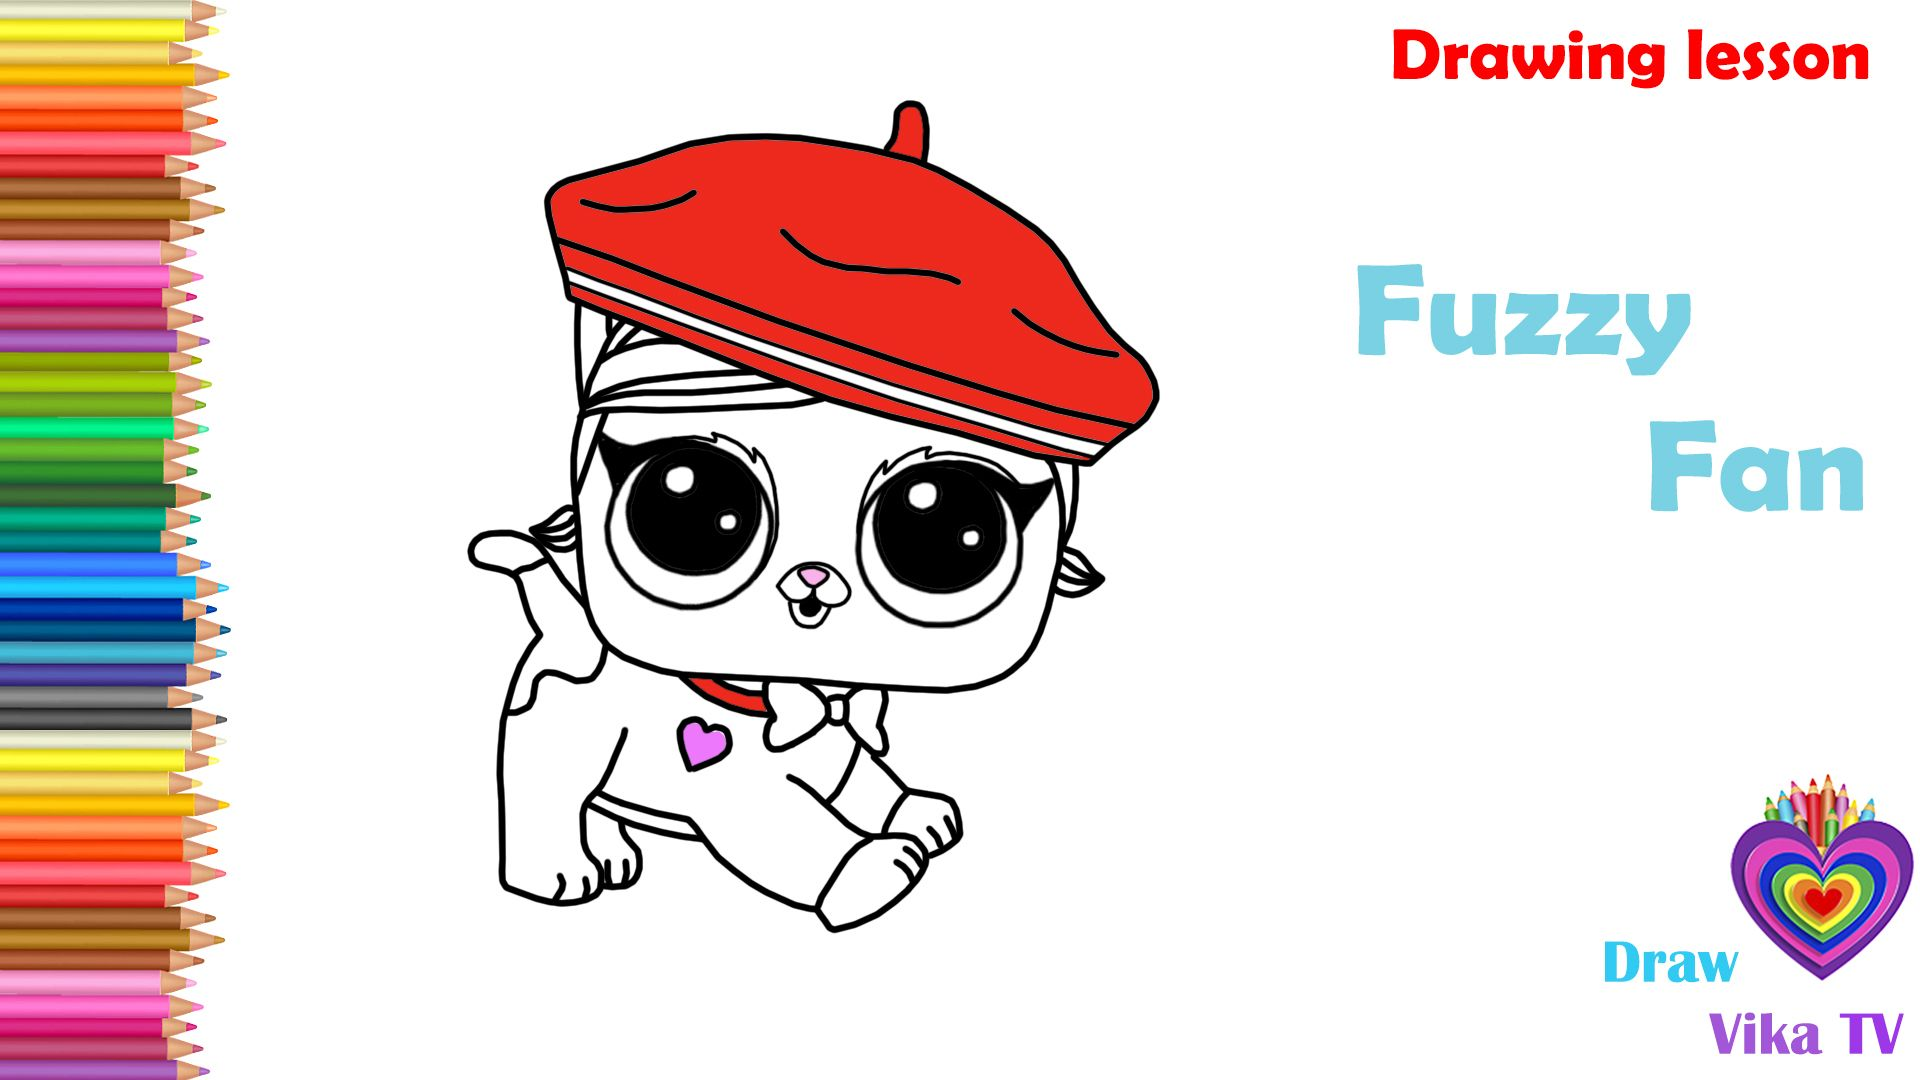 How To Draw Fuzzy Fan LOL Surprise PetsDrawing and